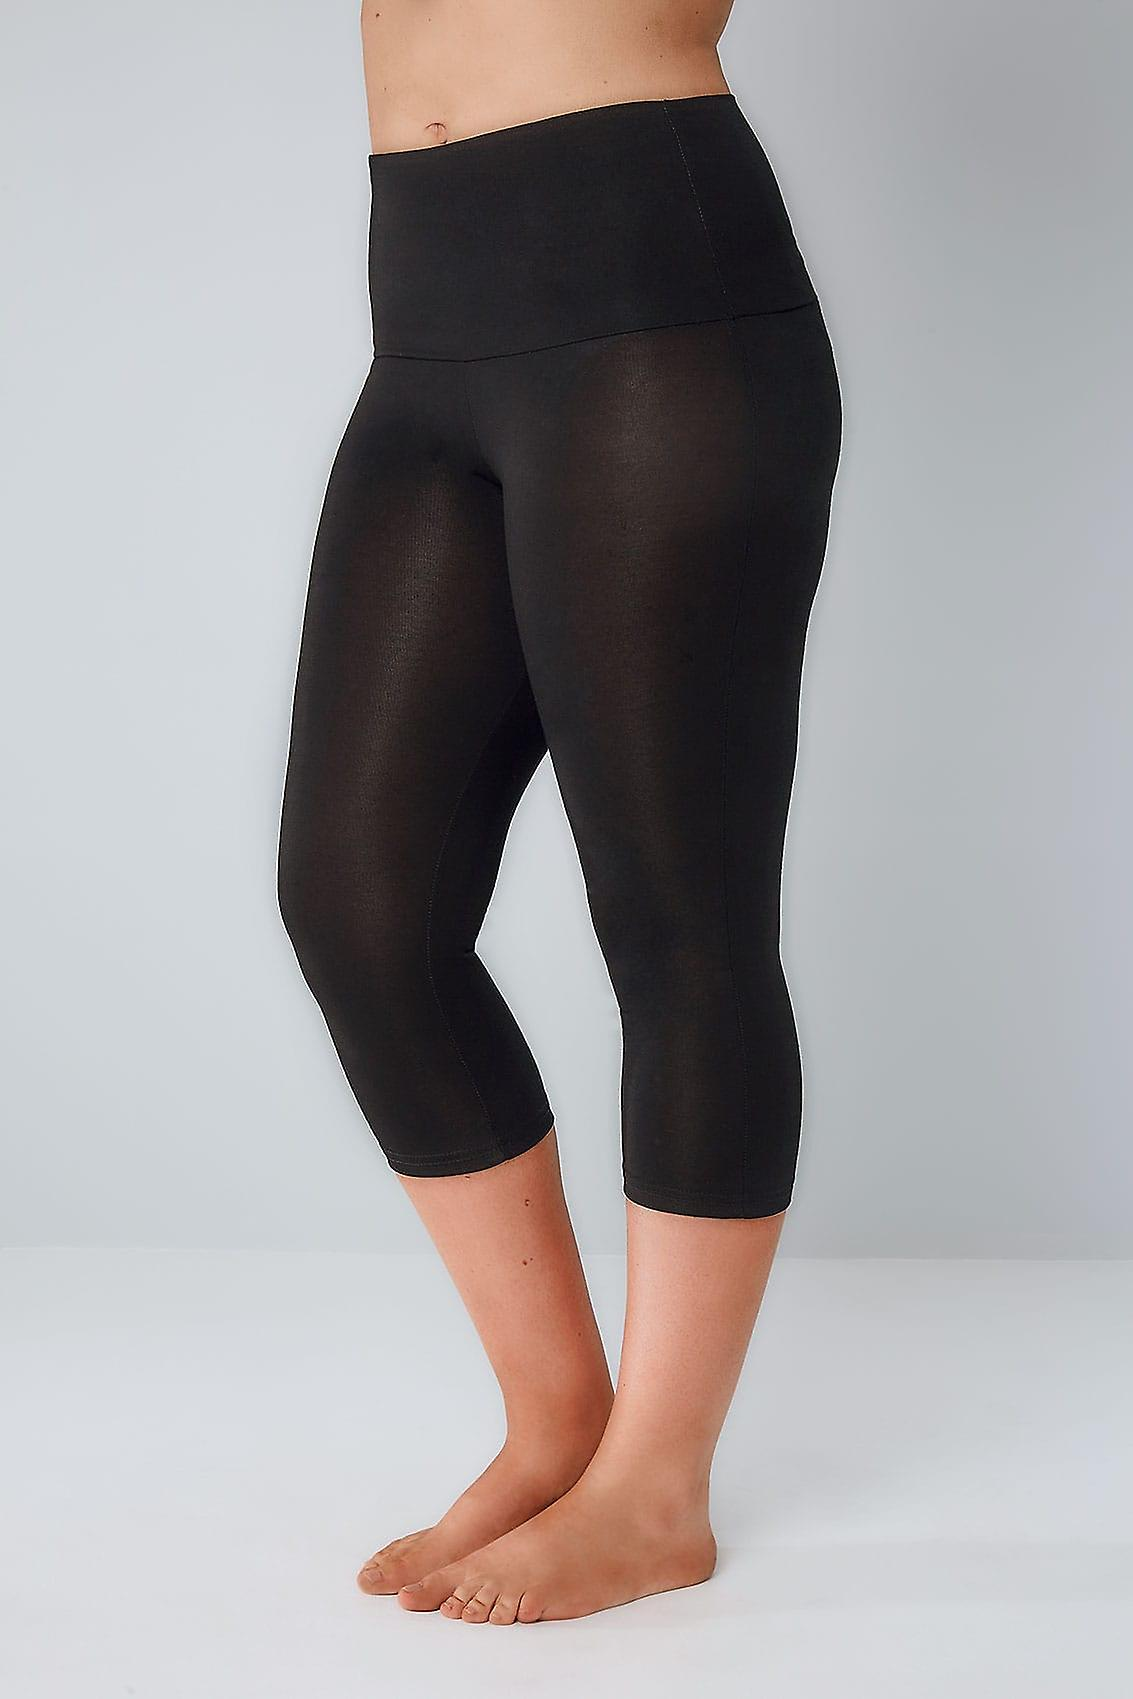 Black TUMMY CONTROL Viscose Elastane Cropped Leggings